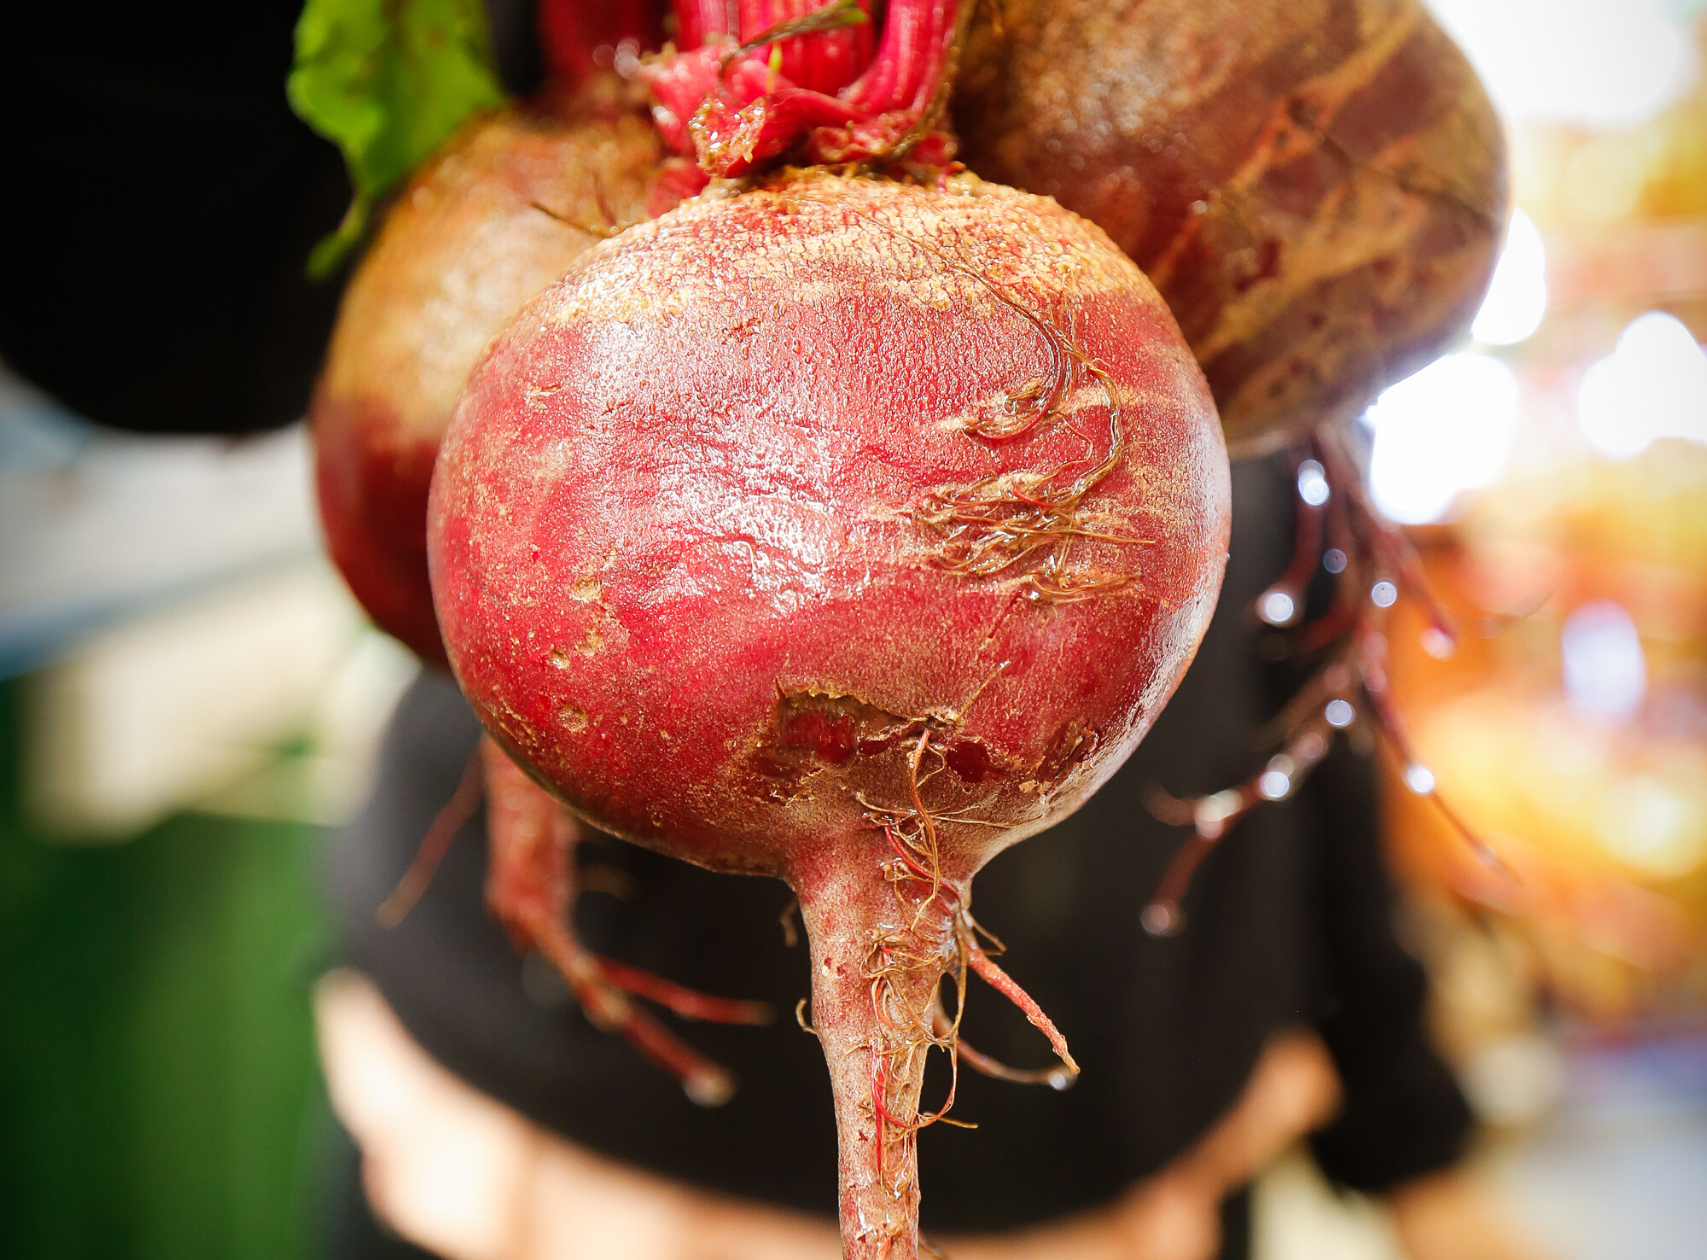 Homegrown beets